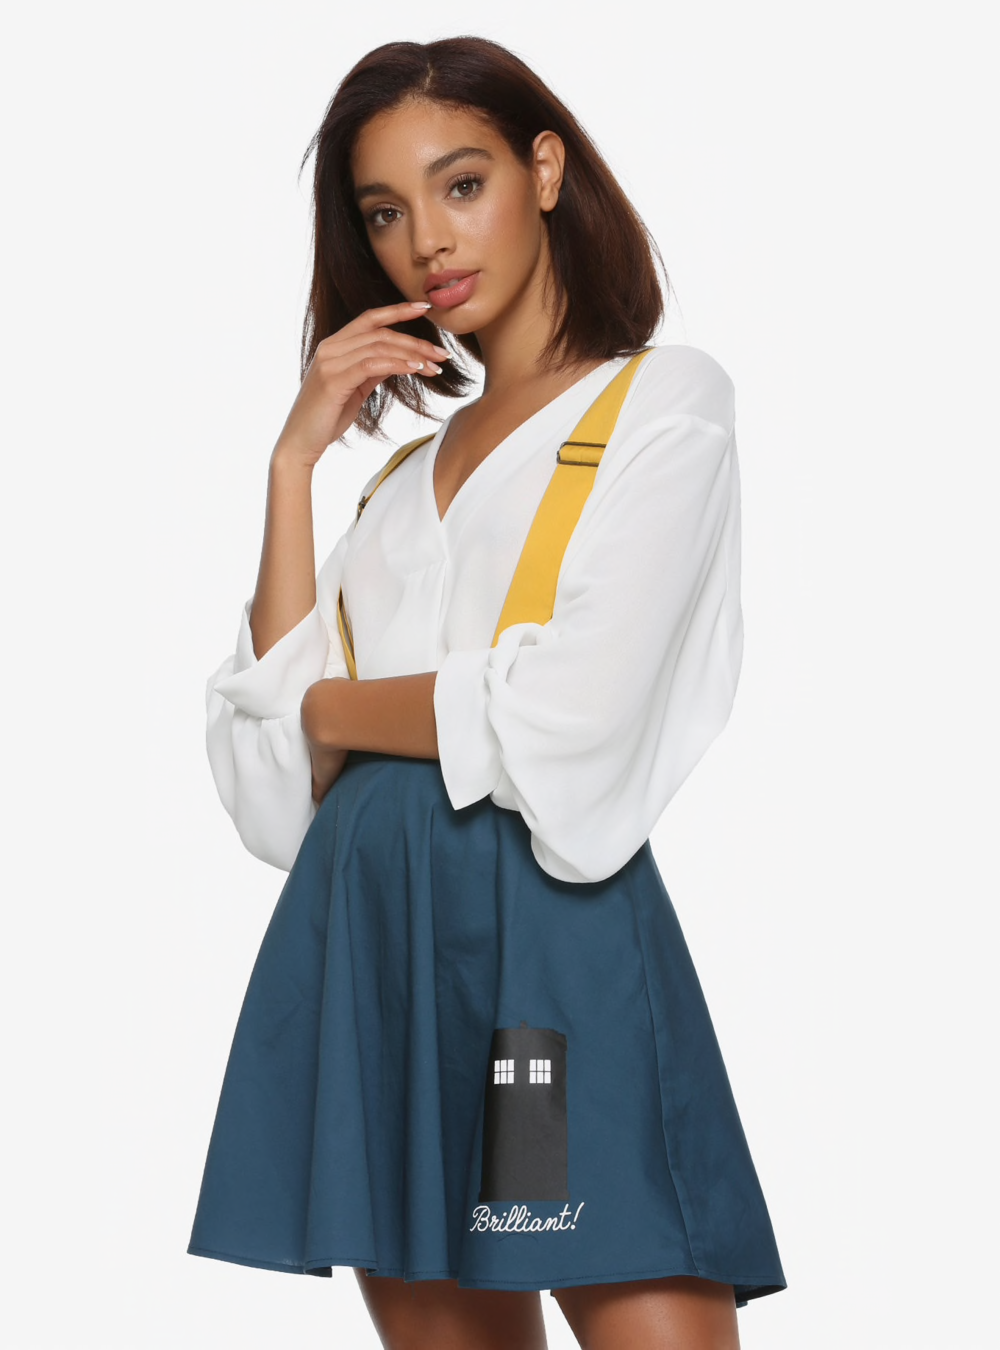 28591a37713 The Her Universe x Doctor Who Collection At Hot Topic — Fashion and ...